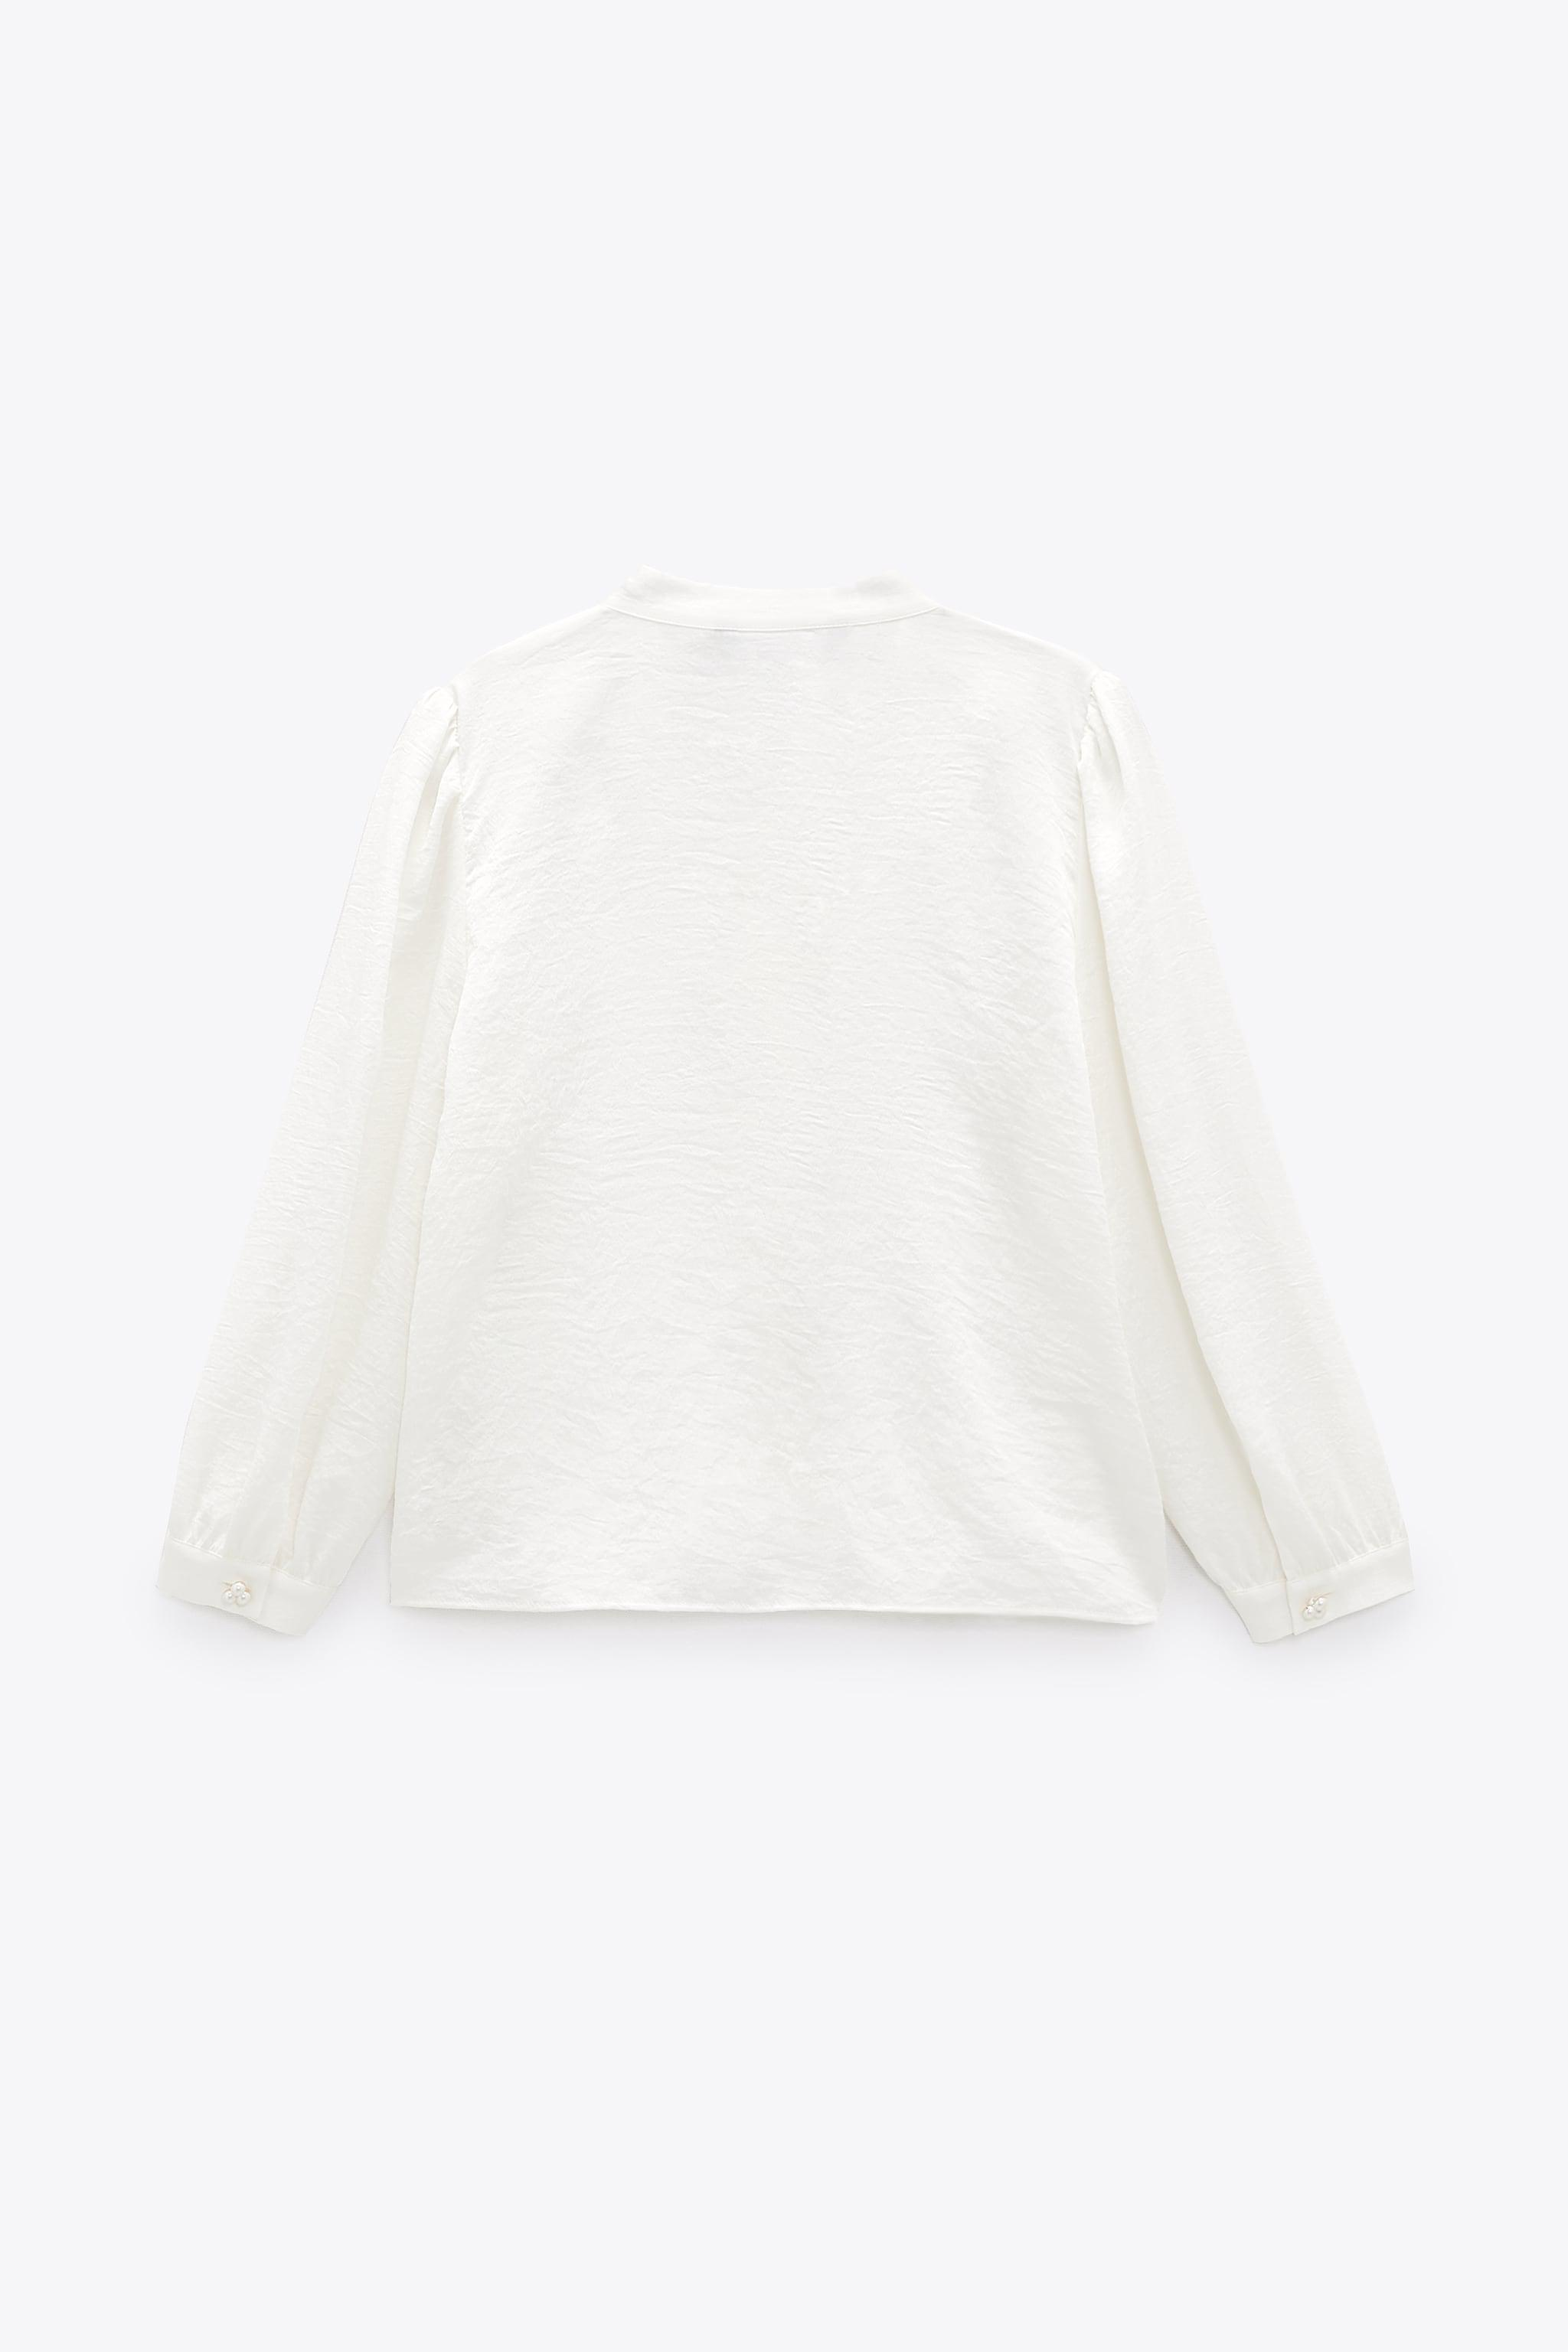 PEARL BUTTON BOW TOP 6